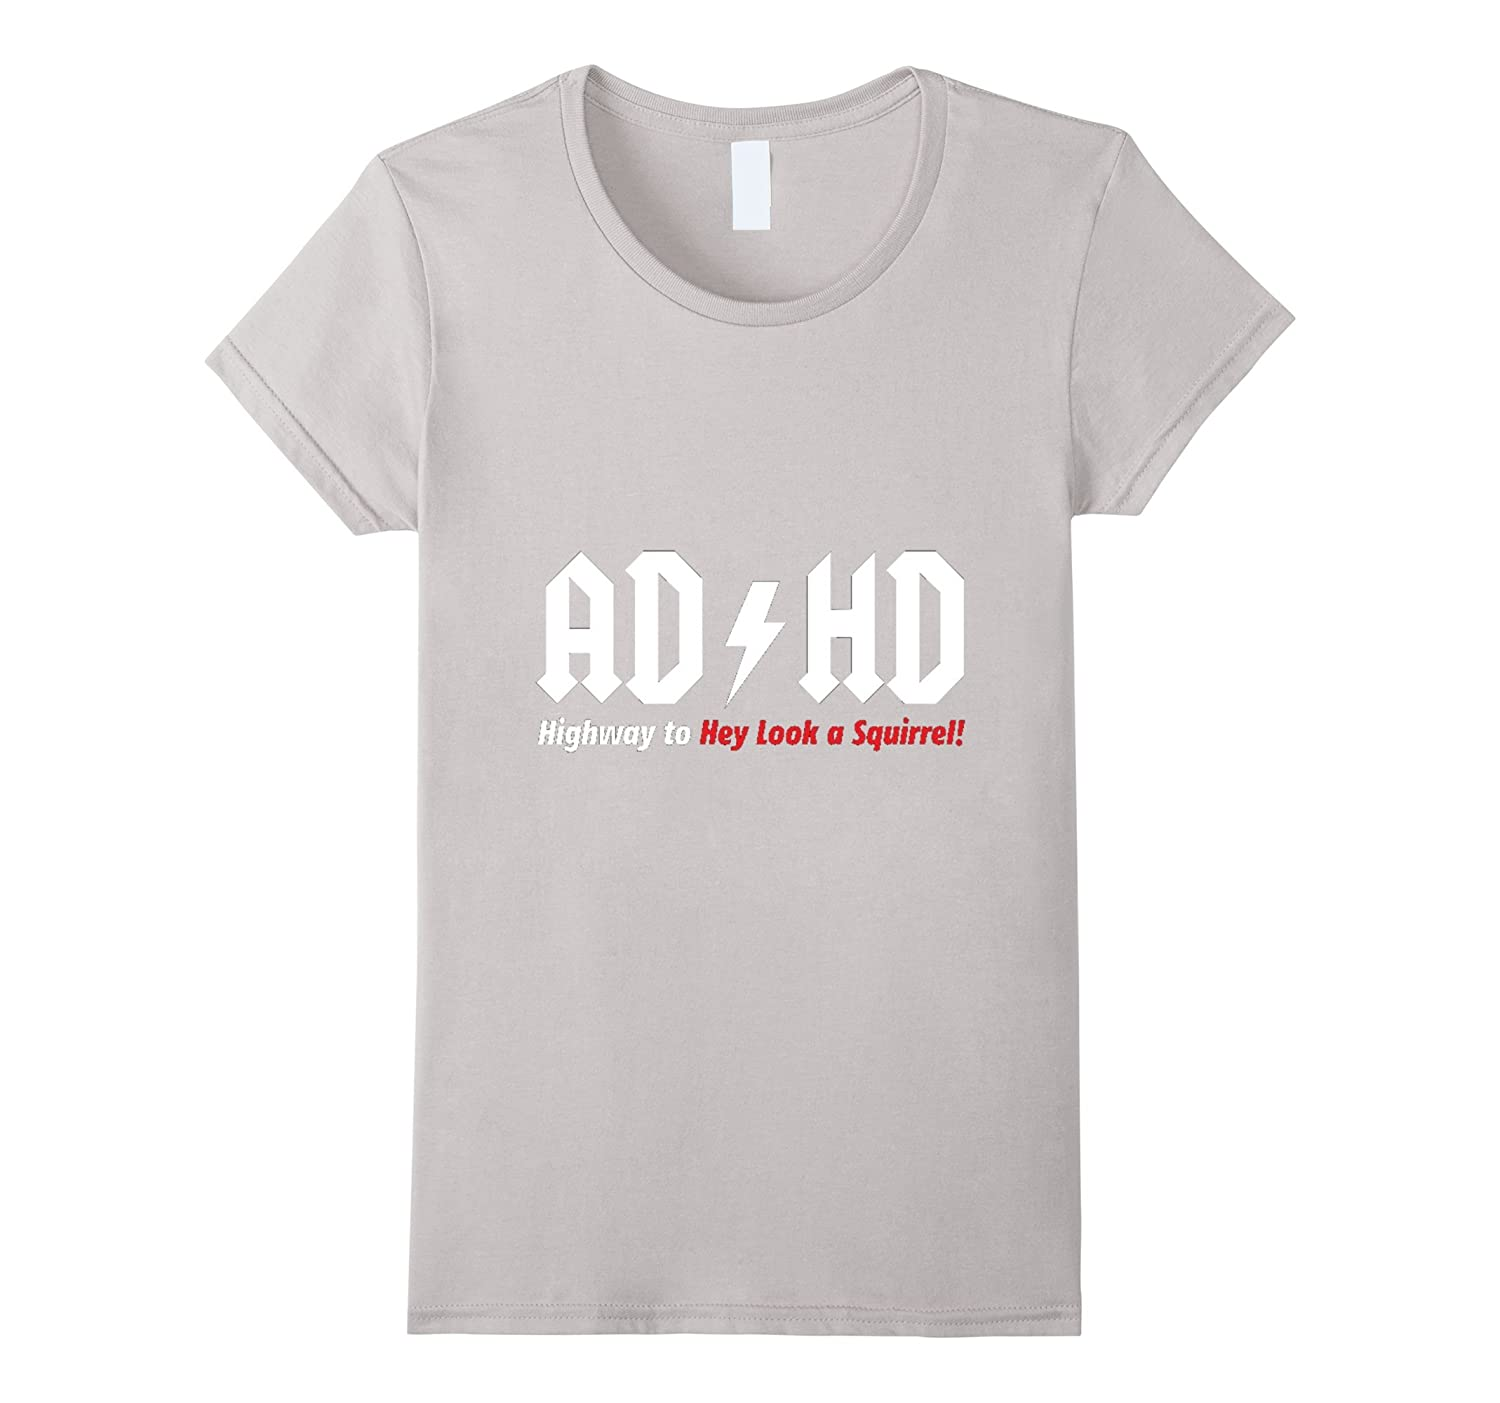 ADHD Highway to Hey Look a Squirrel Funny Relatable T-Shirt